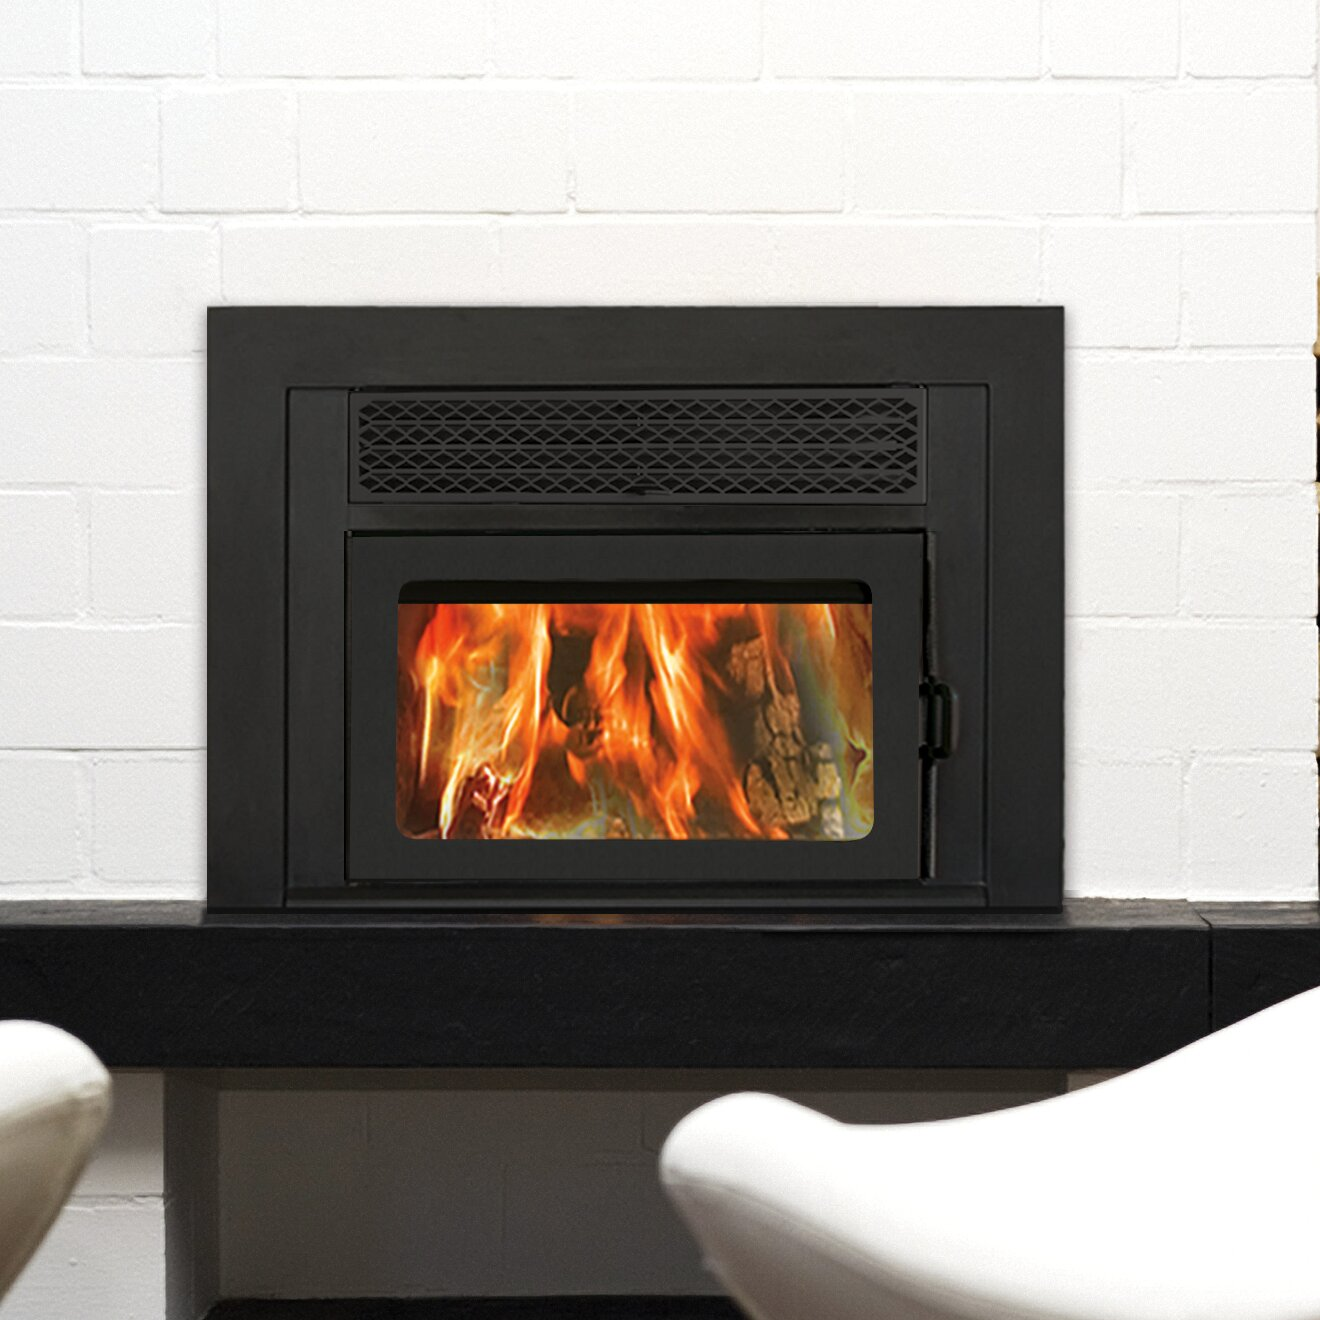 Supreme Fireplaces Inc Volcano Plus Wall Mount Wood Burning Fireplace Insert Reviews Wayfair